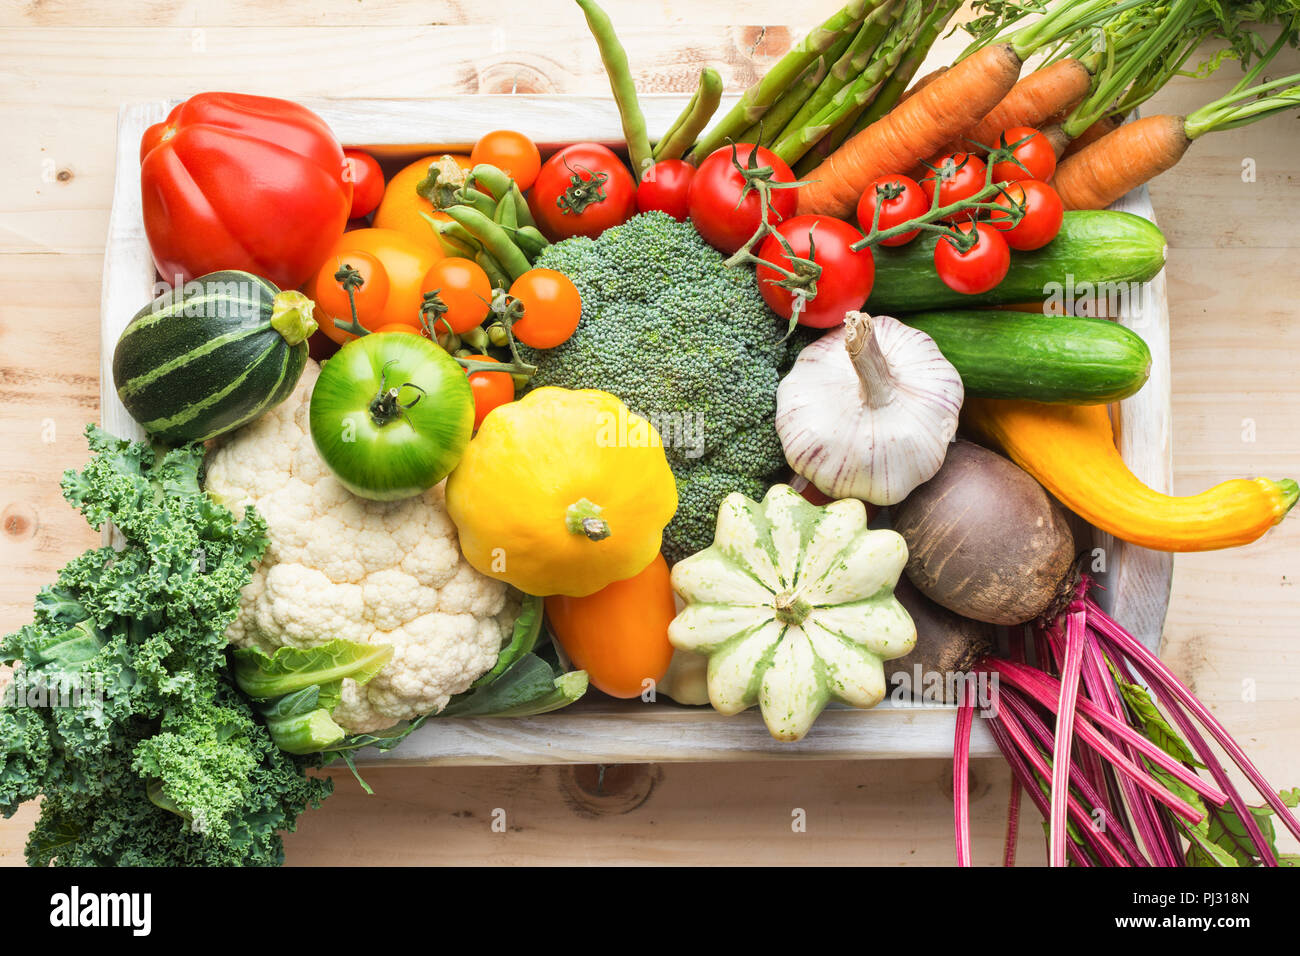 Fresh organic vegetables in a white tray on wooden pine table, top view, selective focus - Stock Image